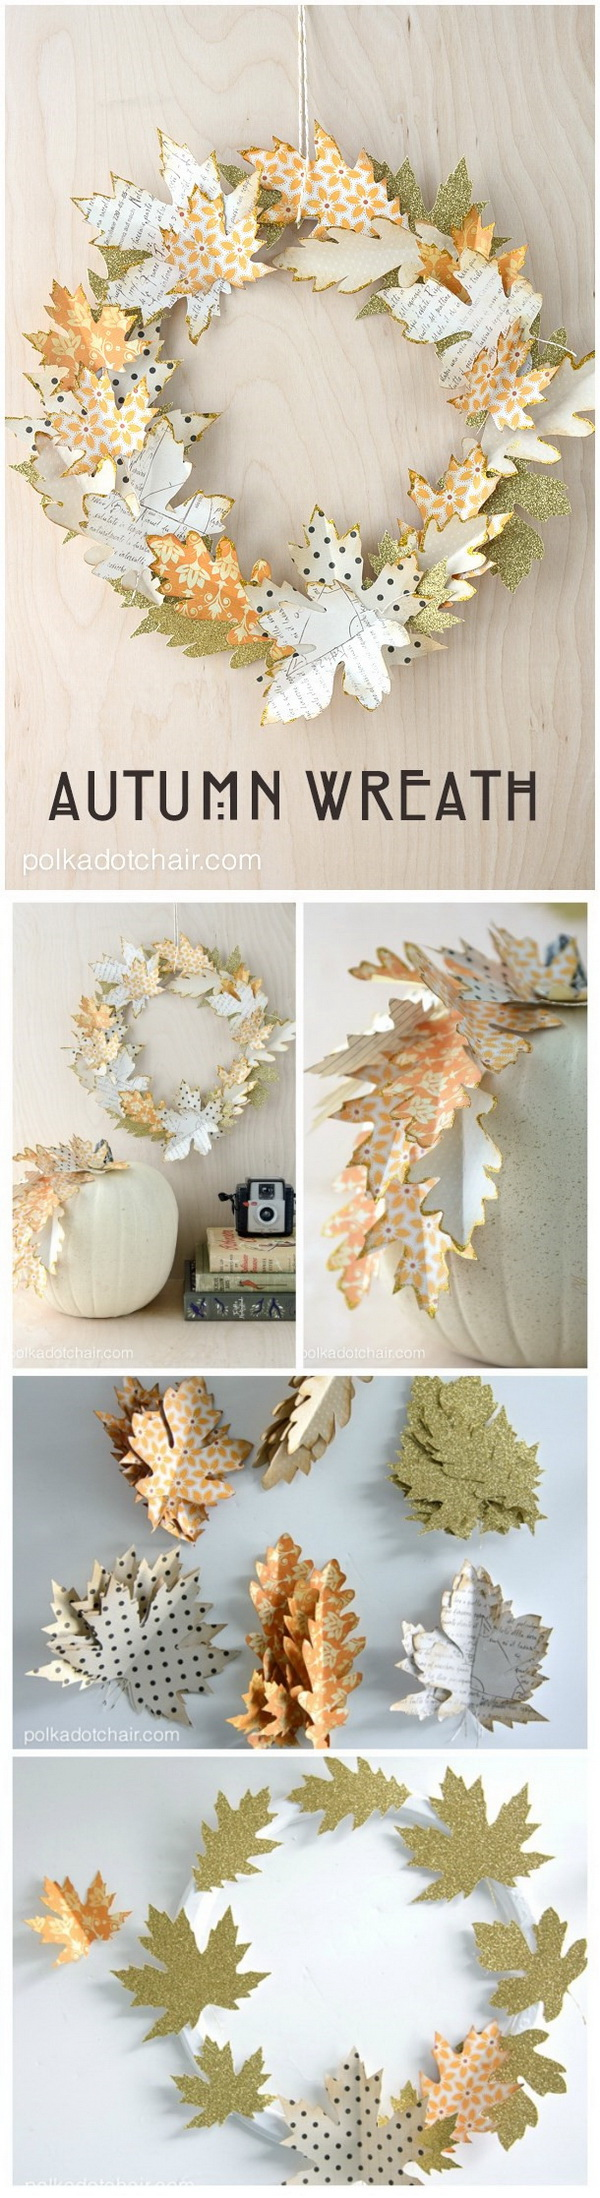 50 diy fall crafts decoration ideas that are easy and for Easy diy fall crafts